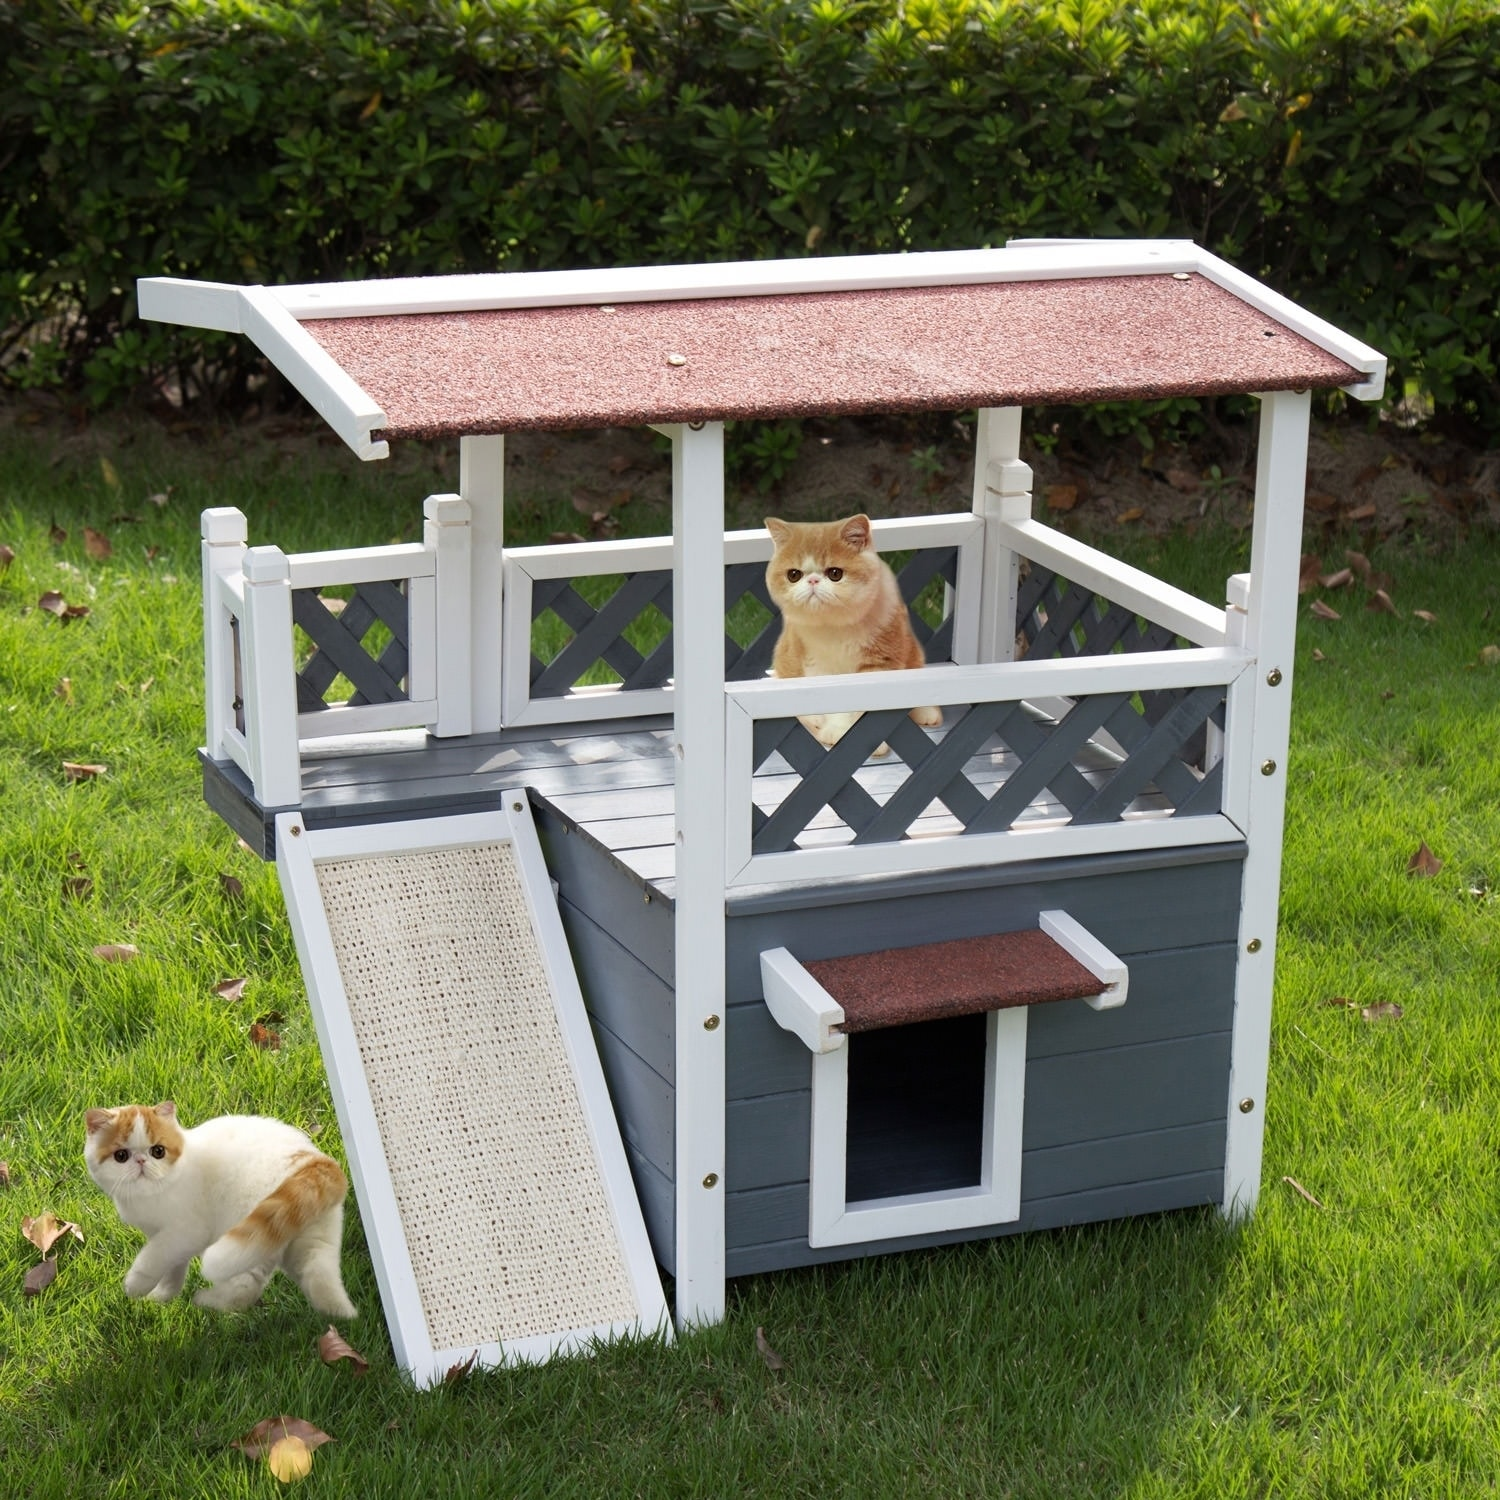 Details About Kinbor Wooden Cat House Indoor Outdoor Kitten Condo Shelter W Roof Stair